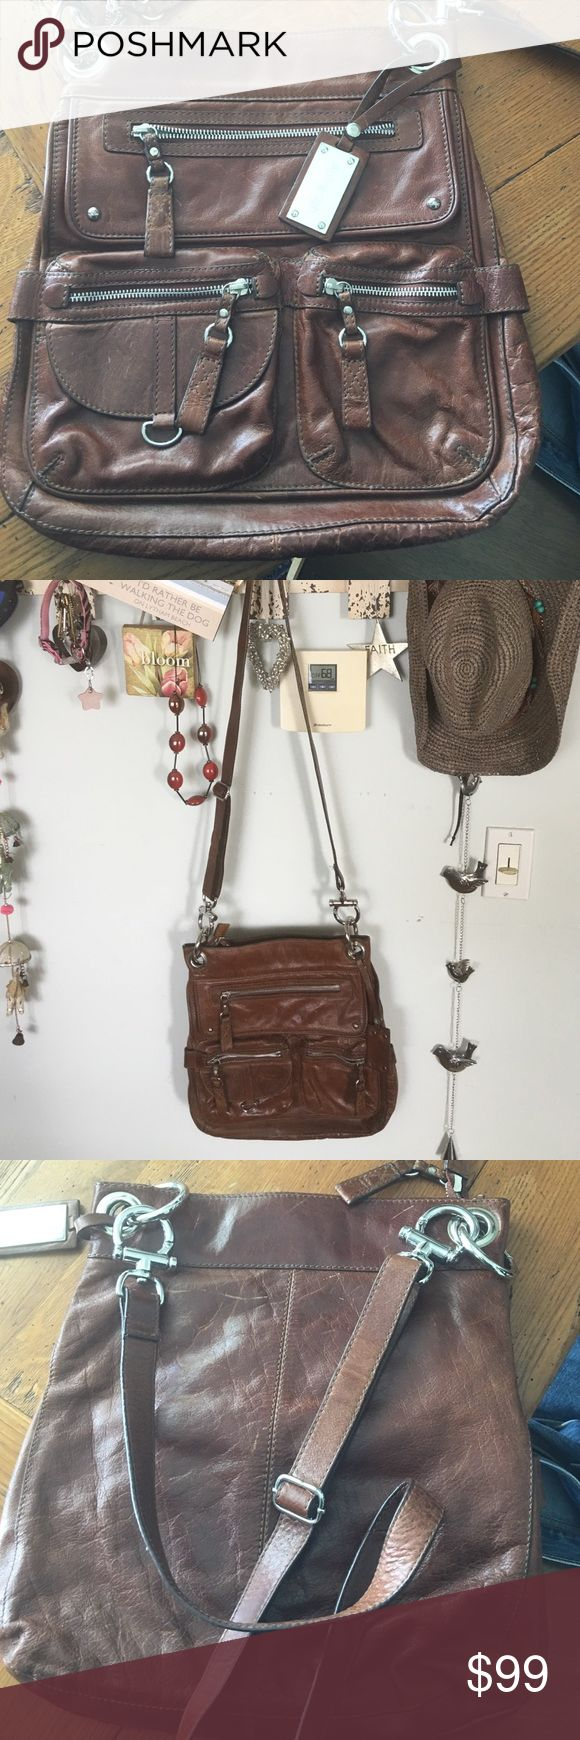 Brown leather cross body, 🇬🇧Autograph collection This bag is a timeless rich luxurious brown leather purchased in Great Britain Marks & Spencers Autograph collection retailing for around $190 its hardware is a fabulous silver polished look. I will add 4 additional pics on separate listing. Used few times condition is excellent. Strap can be shortened for shoulder lookor crossbody. Marks & Spencers Autograph Bags Crossbody Bags